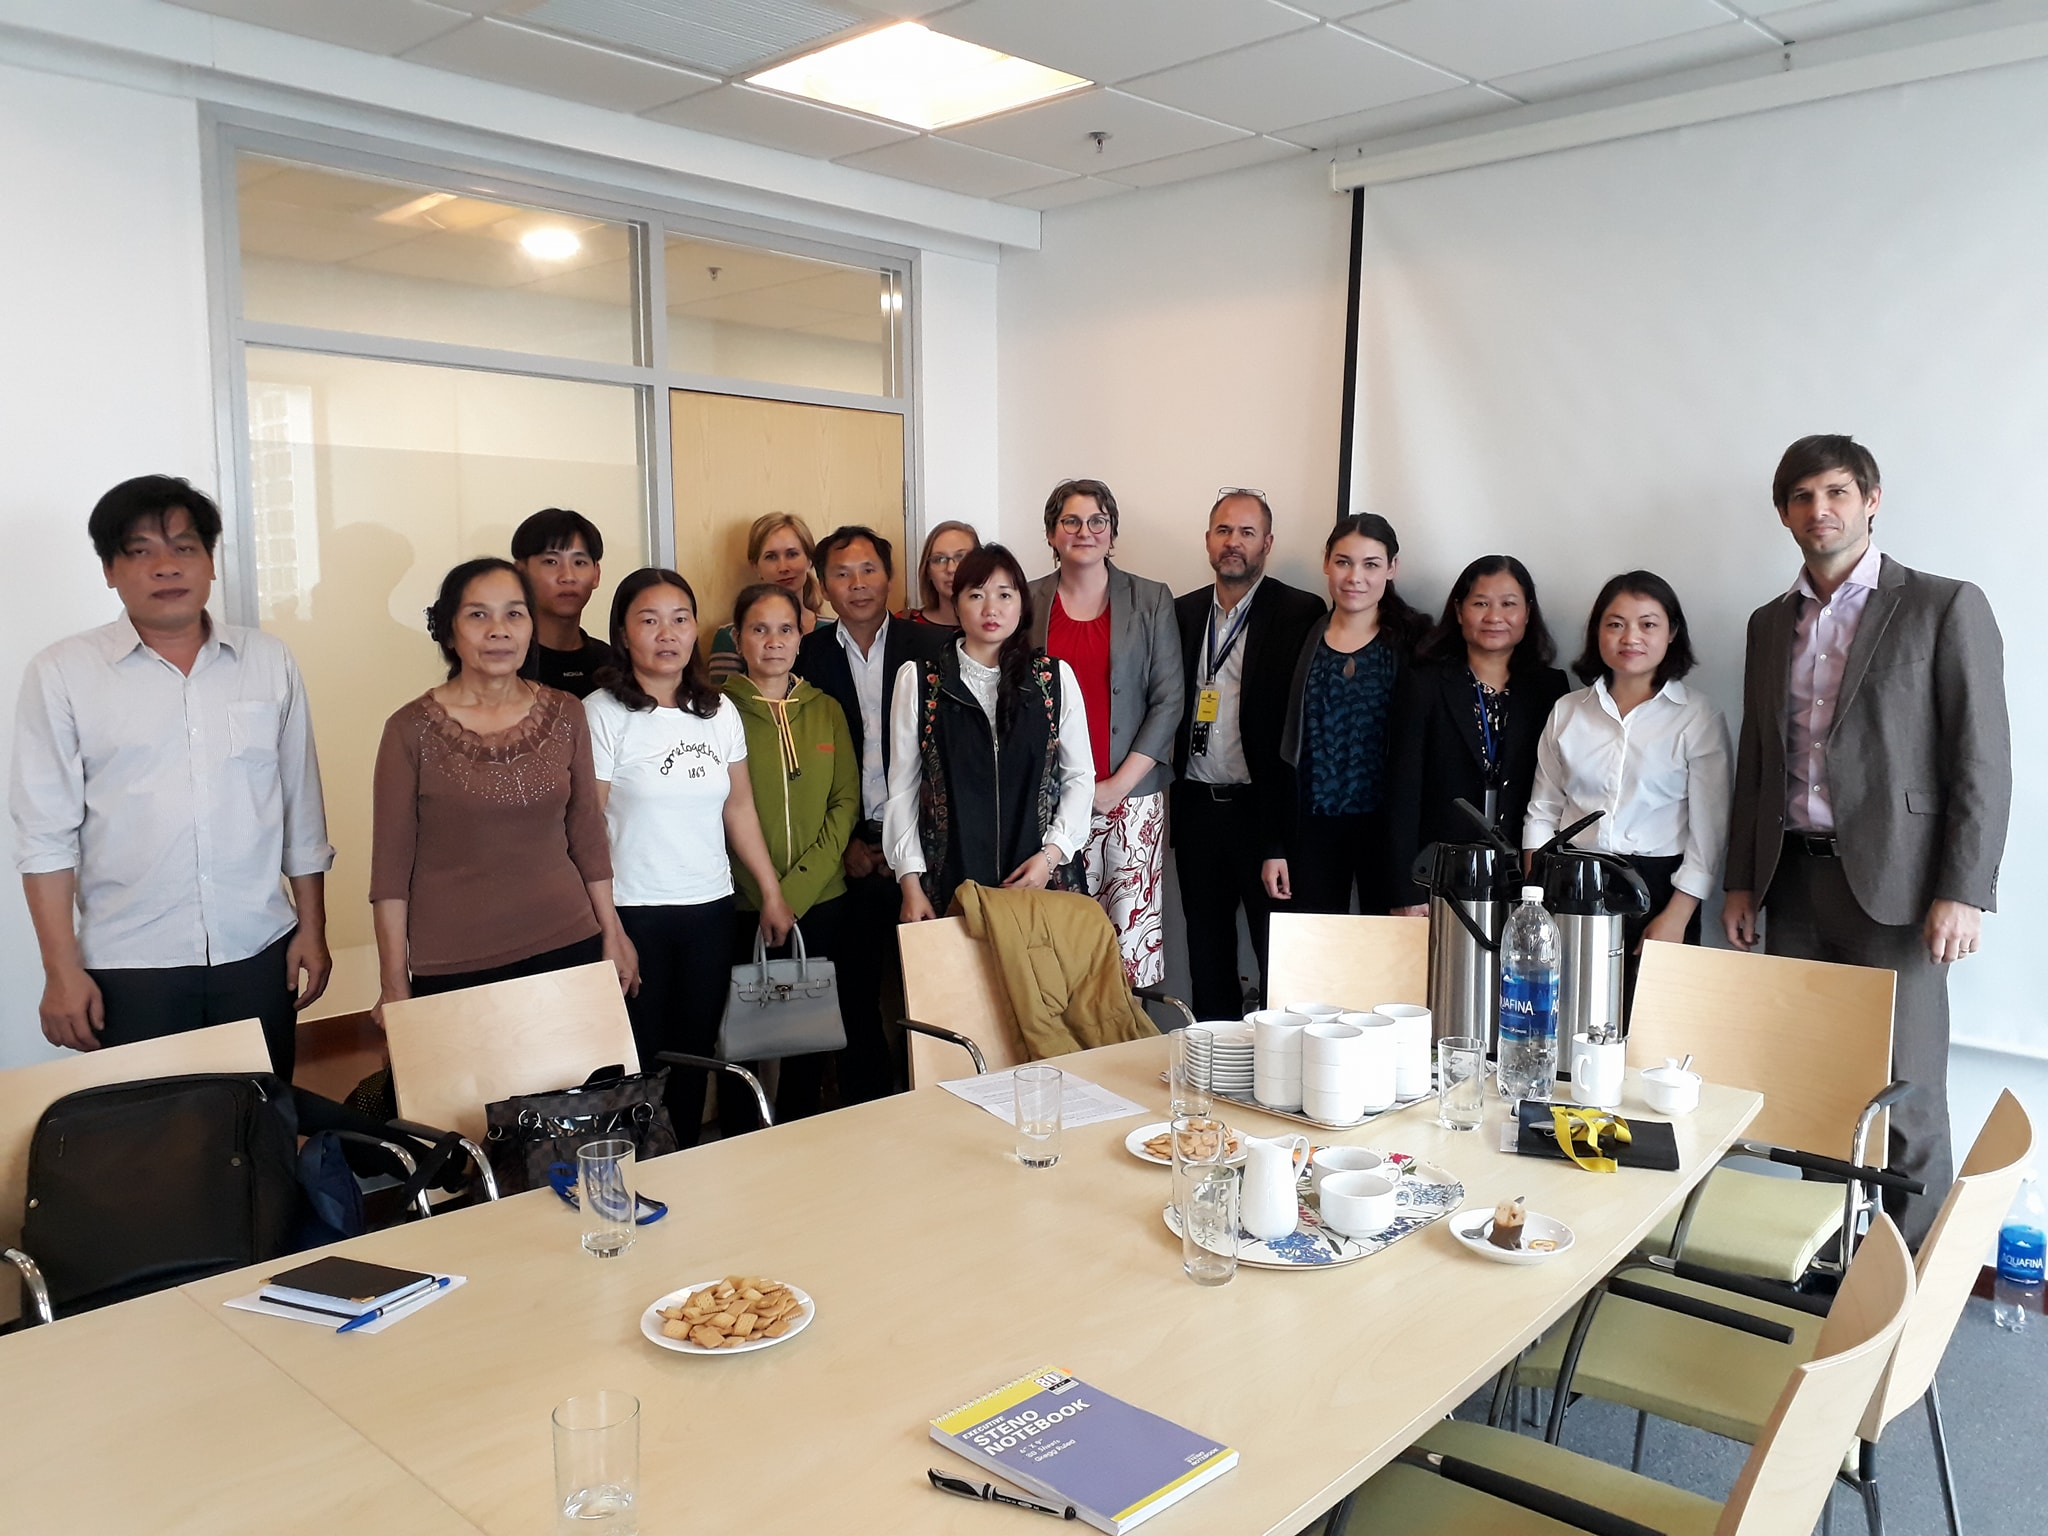 Political officers from the US, UK, French, German, Swedish, Norwegian, and Australian embassies with family members. (Photo: Facebook  Huyen Trang )